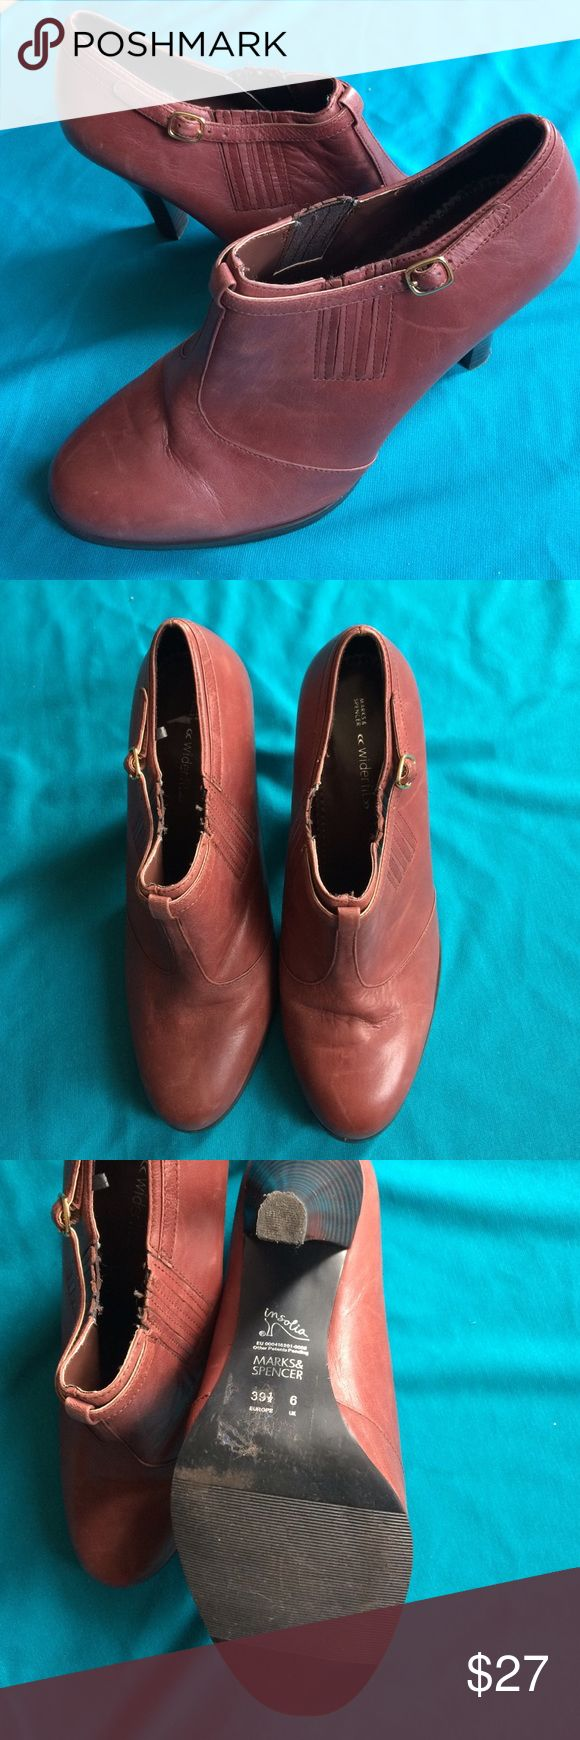 """Marks Spencer wider fit booties 3"""" heel Brown colored slip on bootie. 3"""" heel in good used condition. Shoe shoes some patina (scuffs) on leather. But overall a great fall/winter shoe. No trades at this time but I do offer 15%off bundles. Marks & Spencer Shoes Ankle Boots & Booties"""